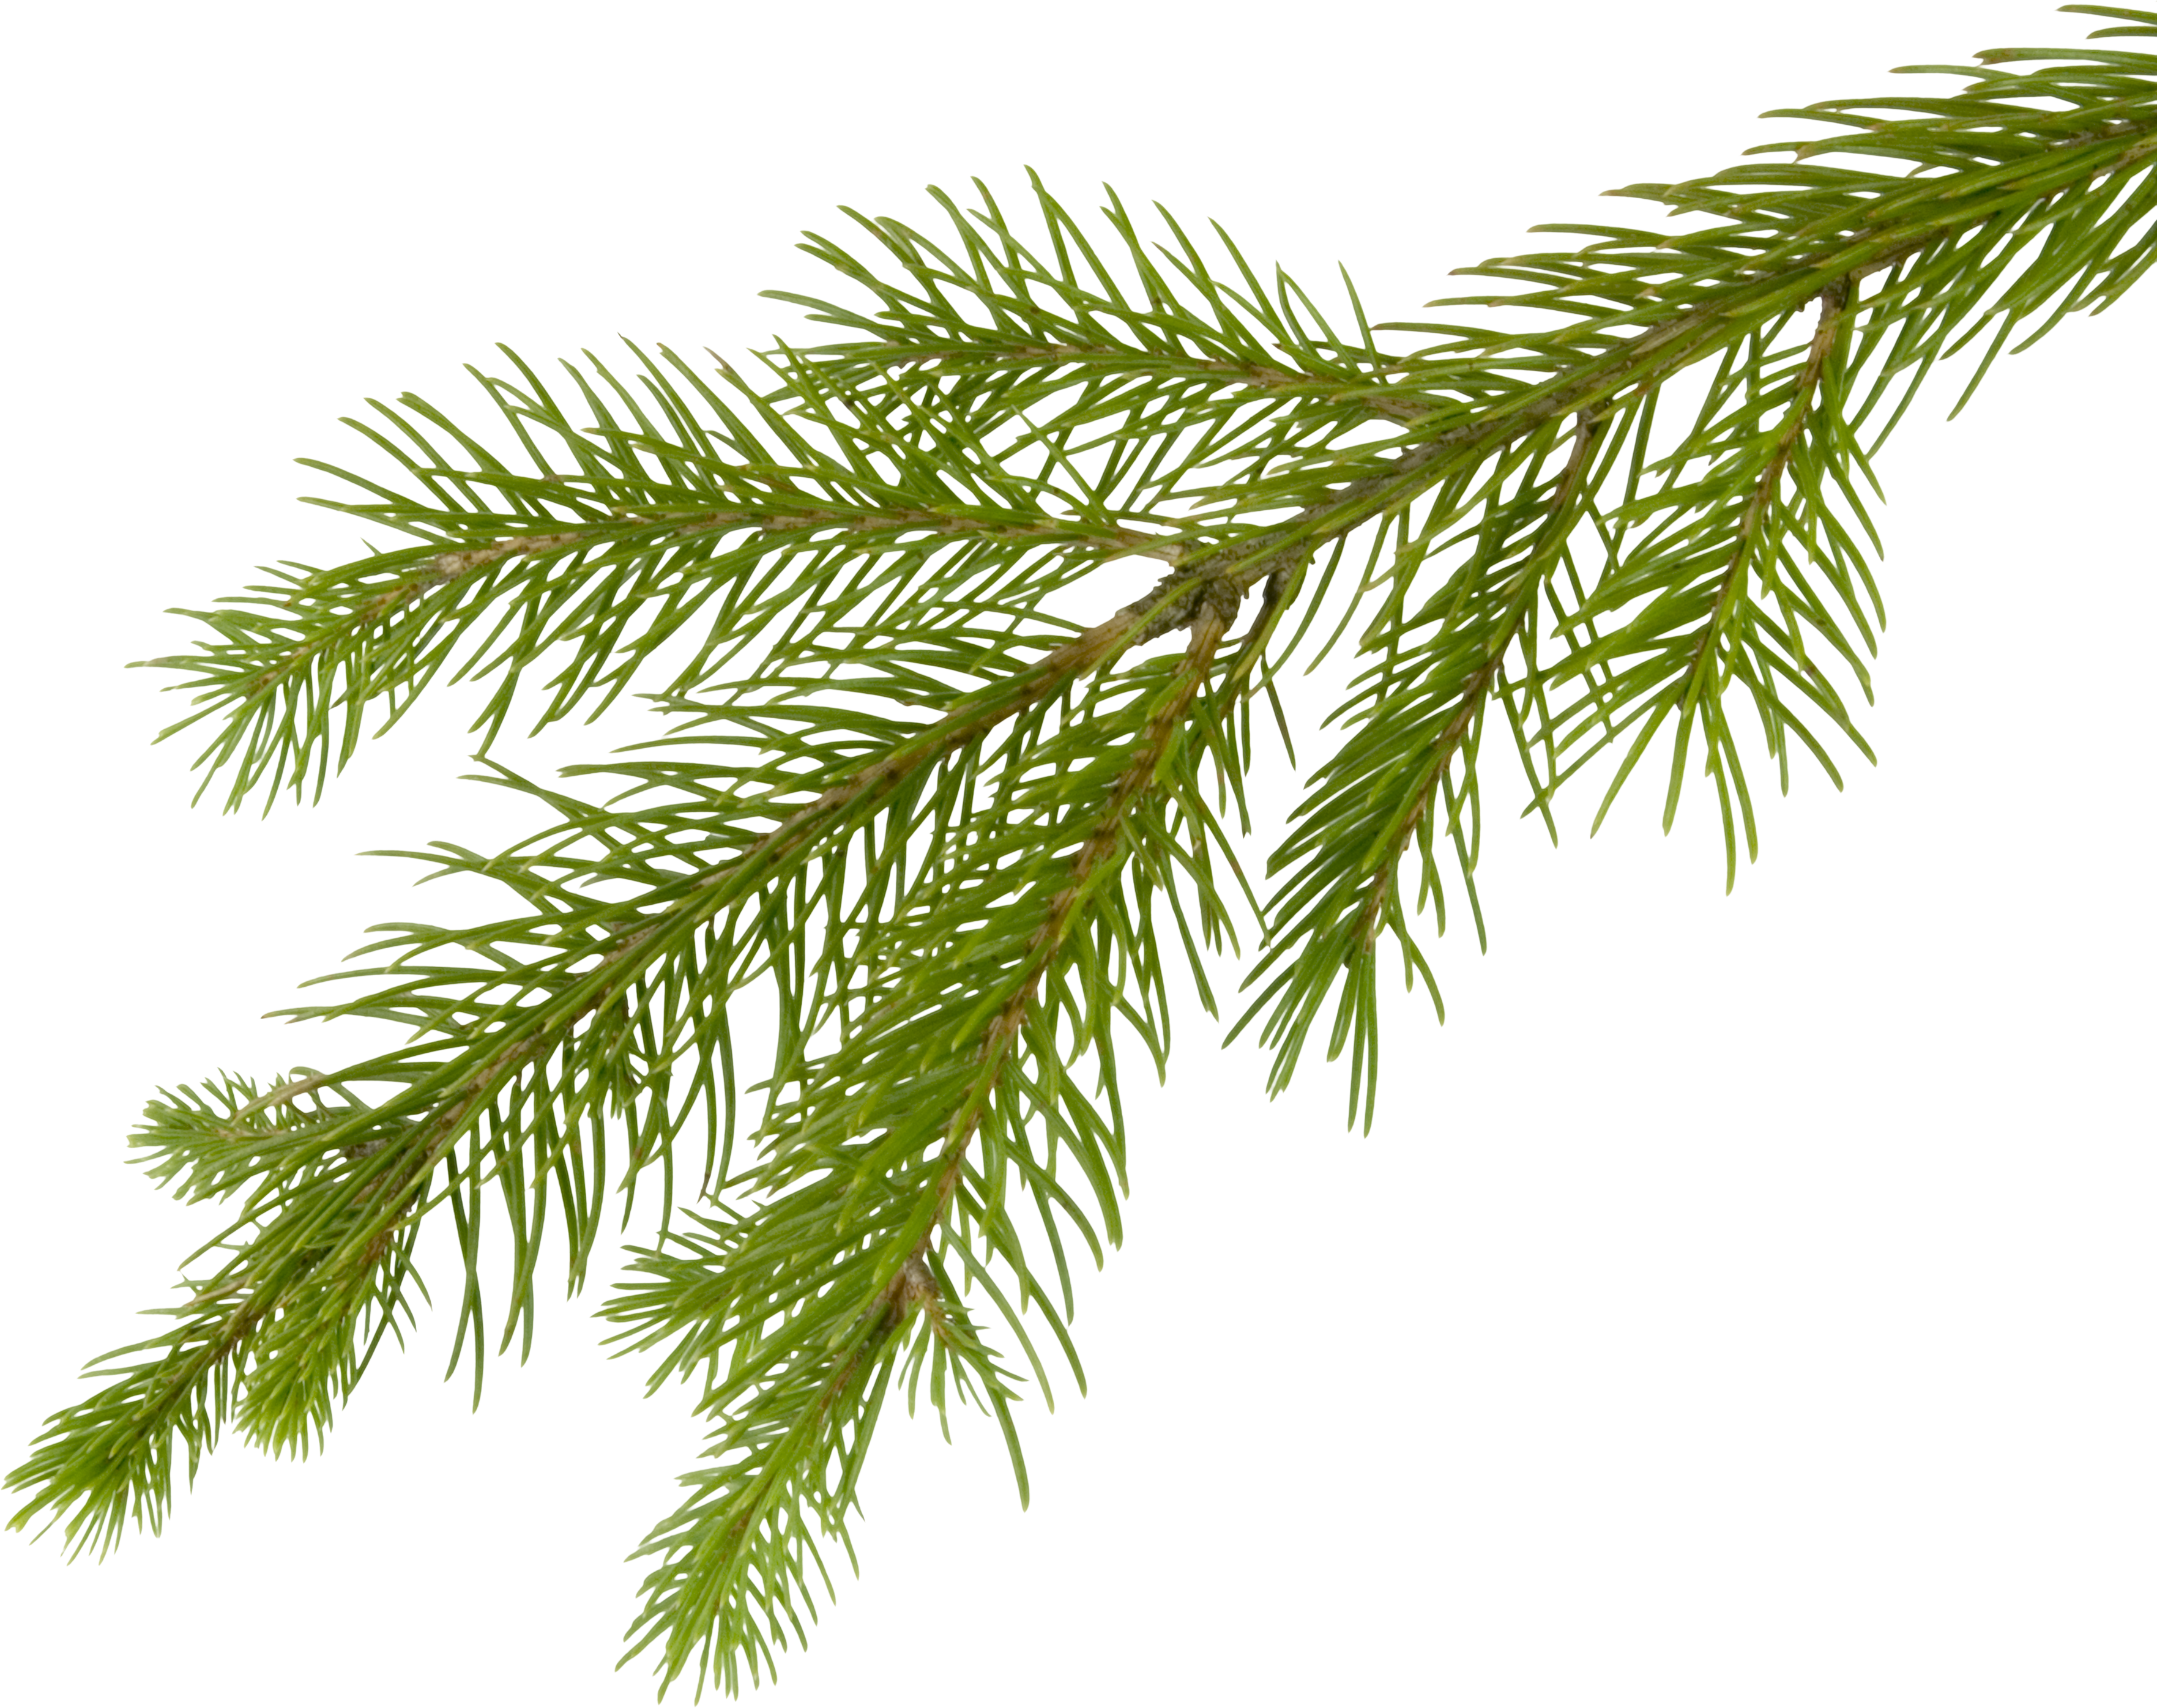 Fir-tree PNG Image - Tree Limb PNG